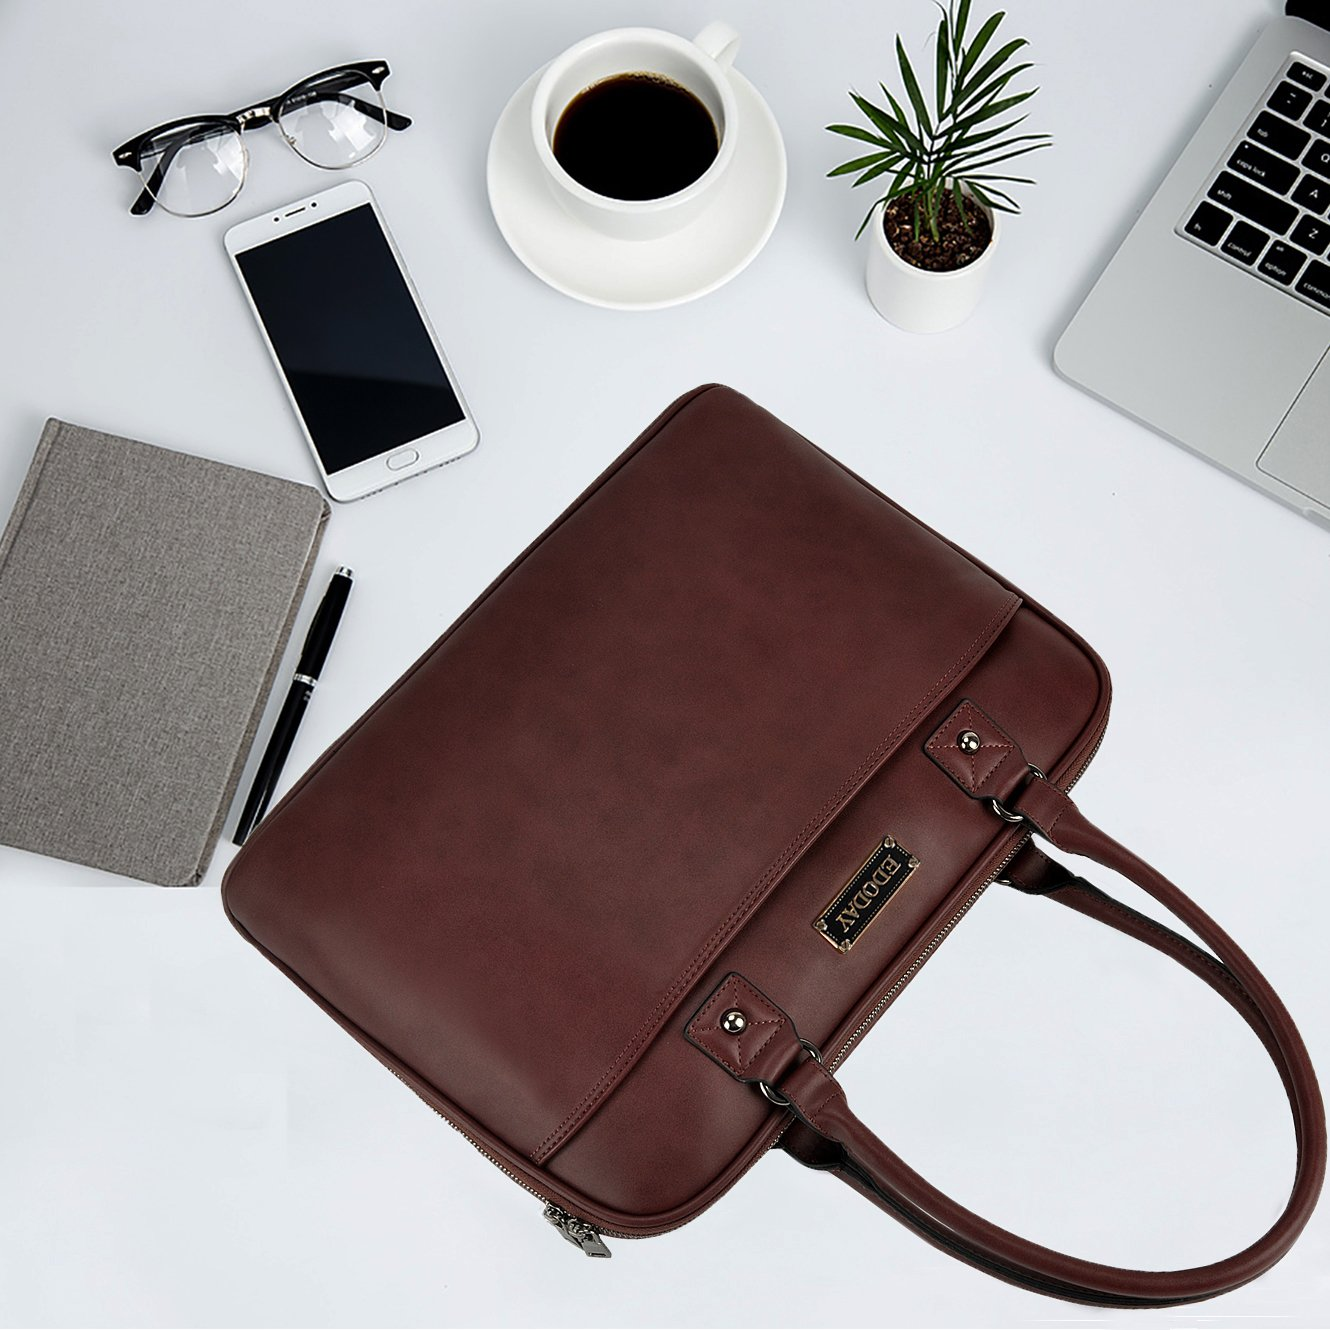 Laptop Bag for Women,15.6 Inch Laptop Tote Bag for Bussiness Work,Most Convenient Full Open Zipper Design[L0009/Coffee] by EDODAY (Image #4)